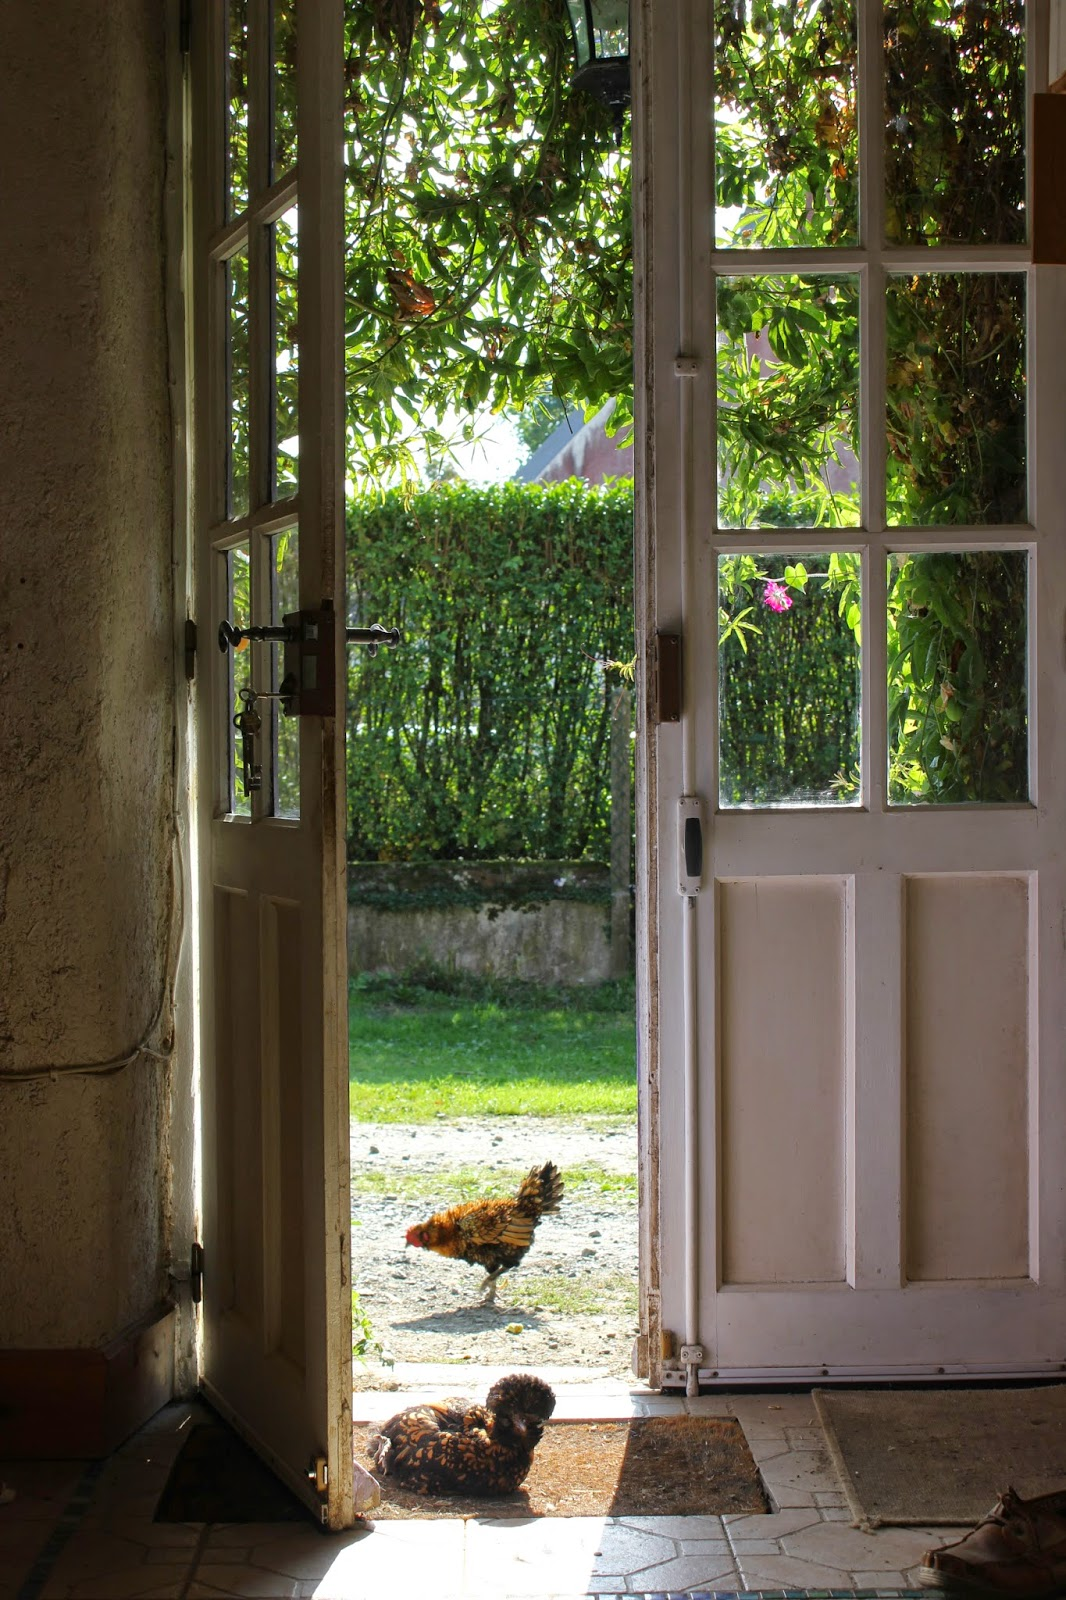 Chickens at the kitchen door